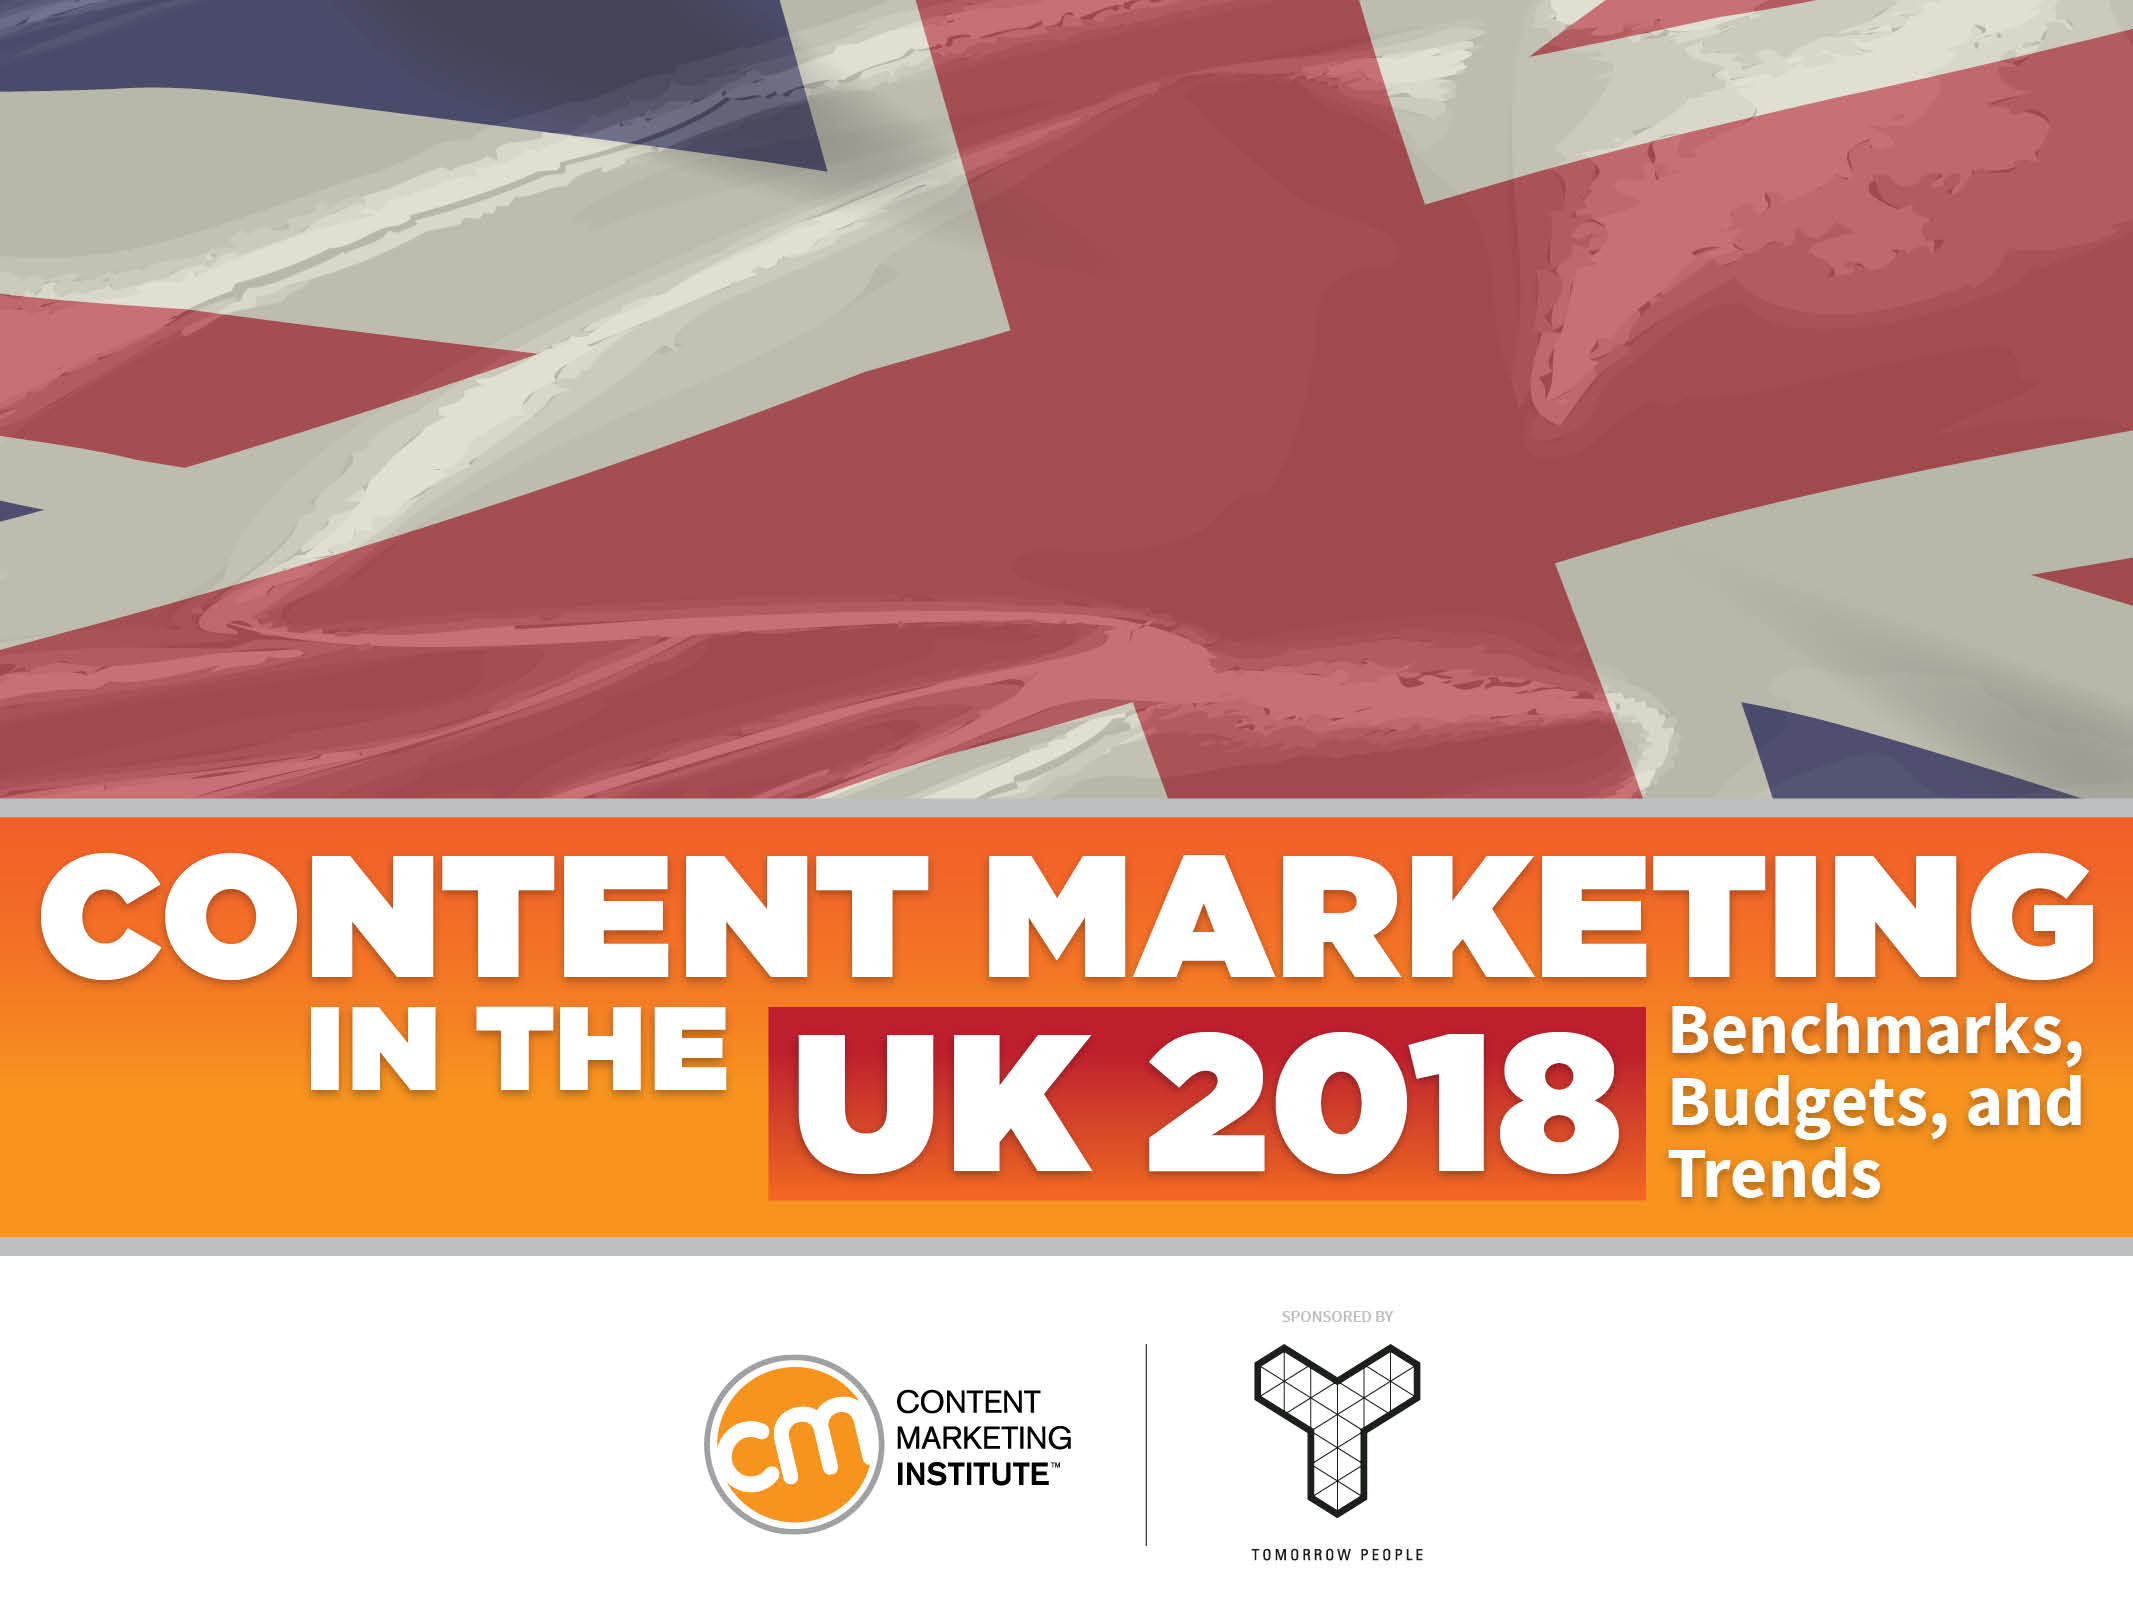 5 Things Highly Committed Content Marketers Do Better [New UK Research]